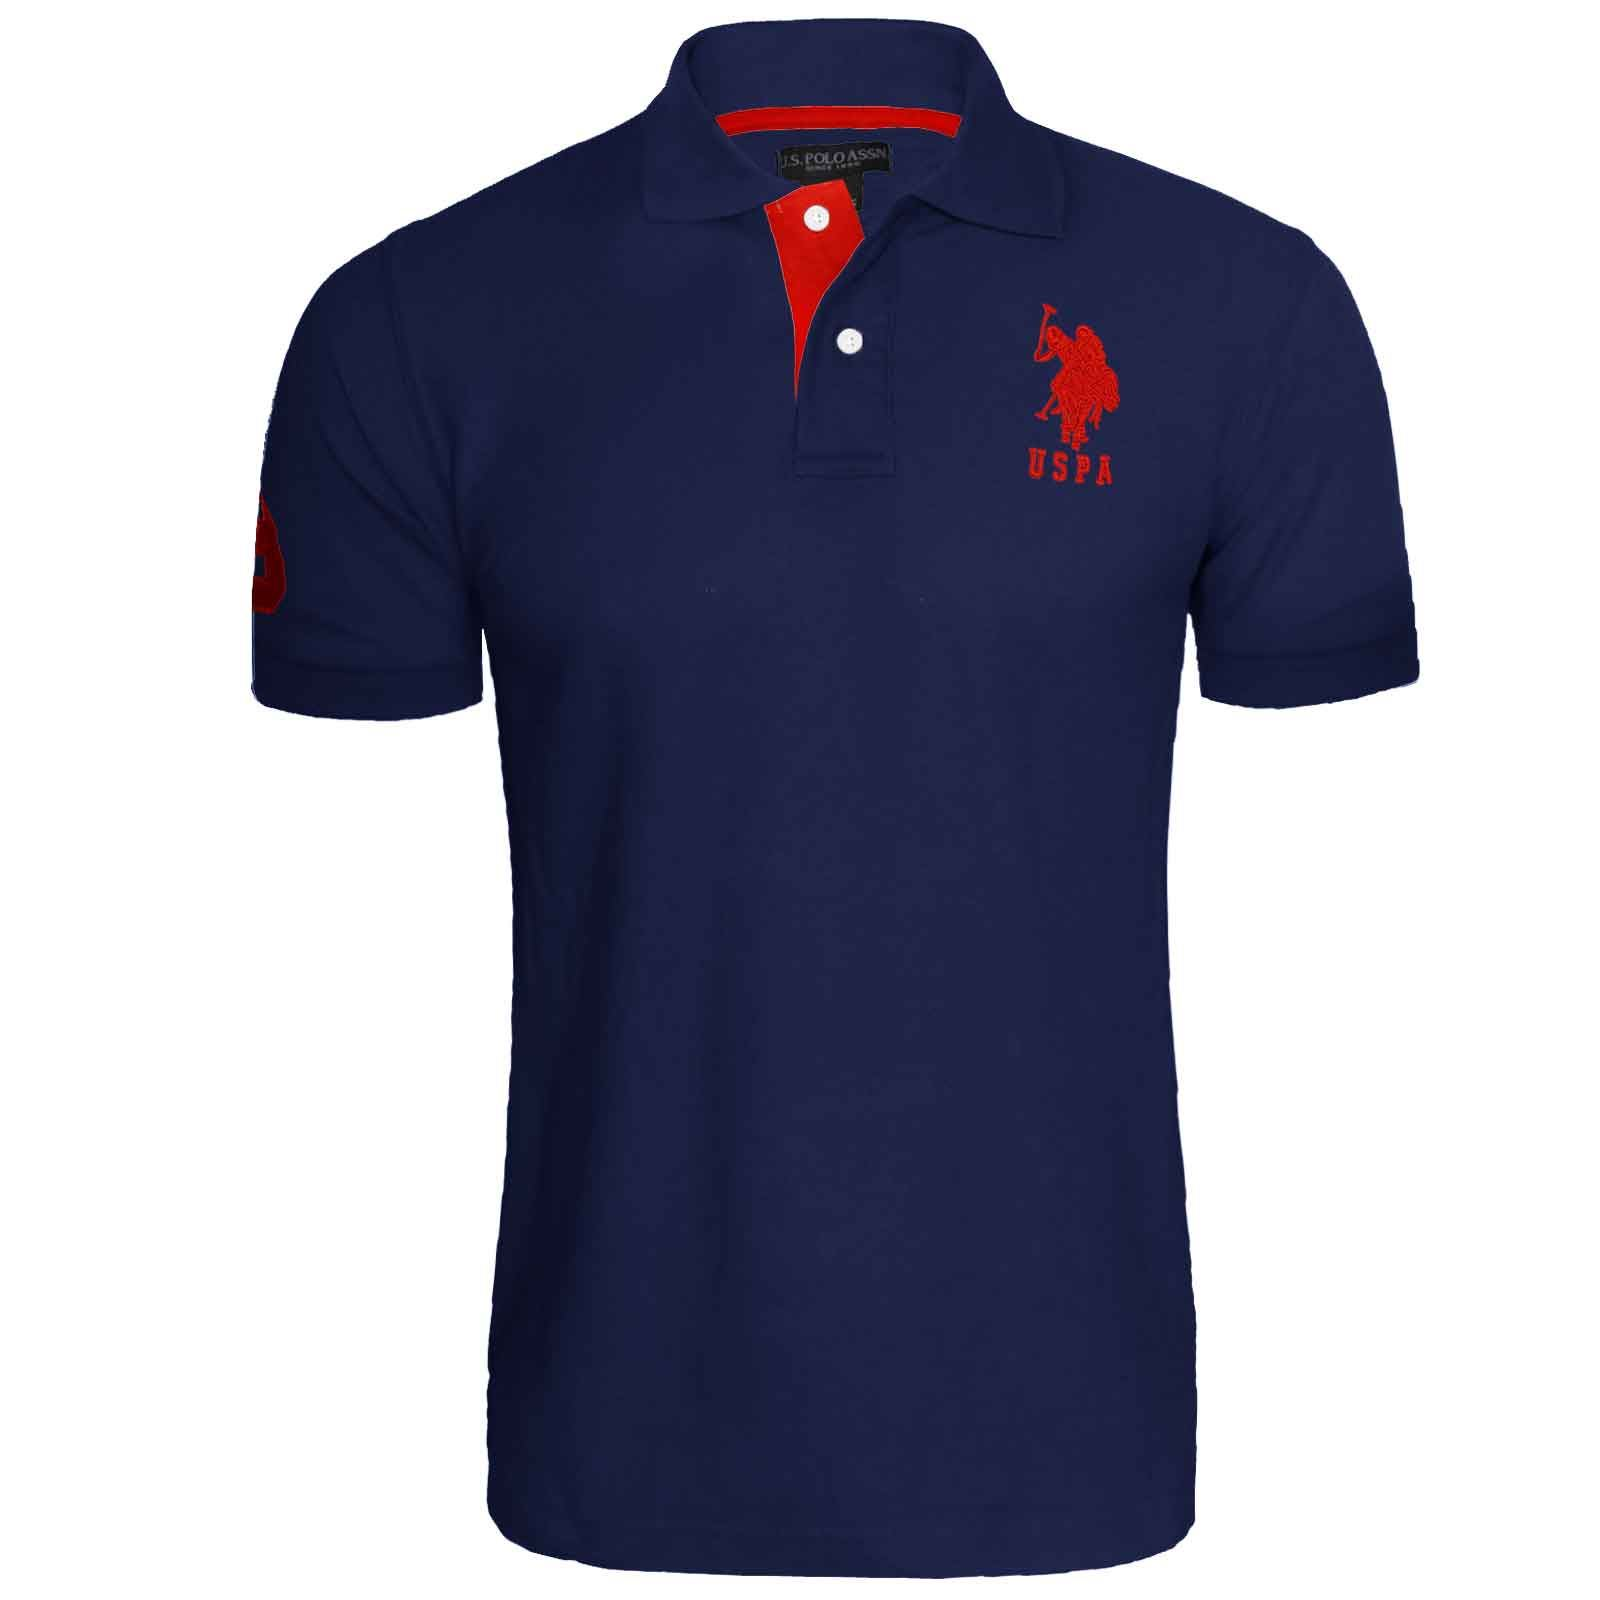 Mens us polo assn pique short sleeve cotton t shirt for Branded polo t shirts